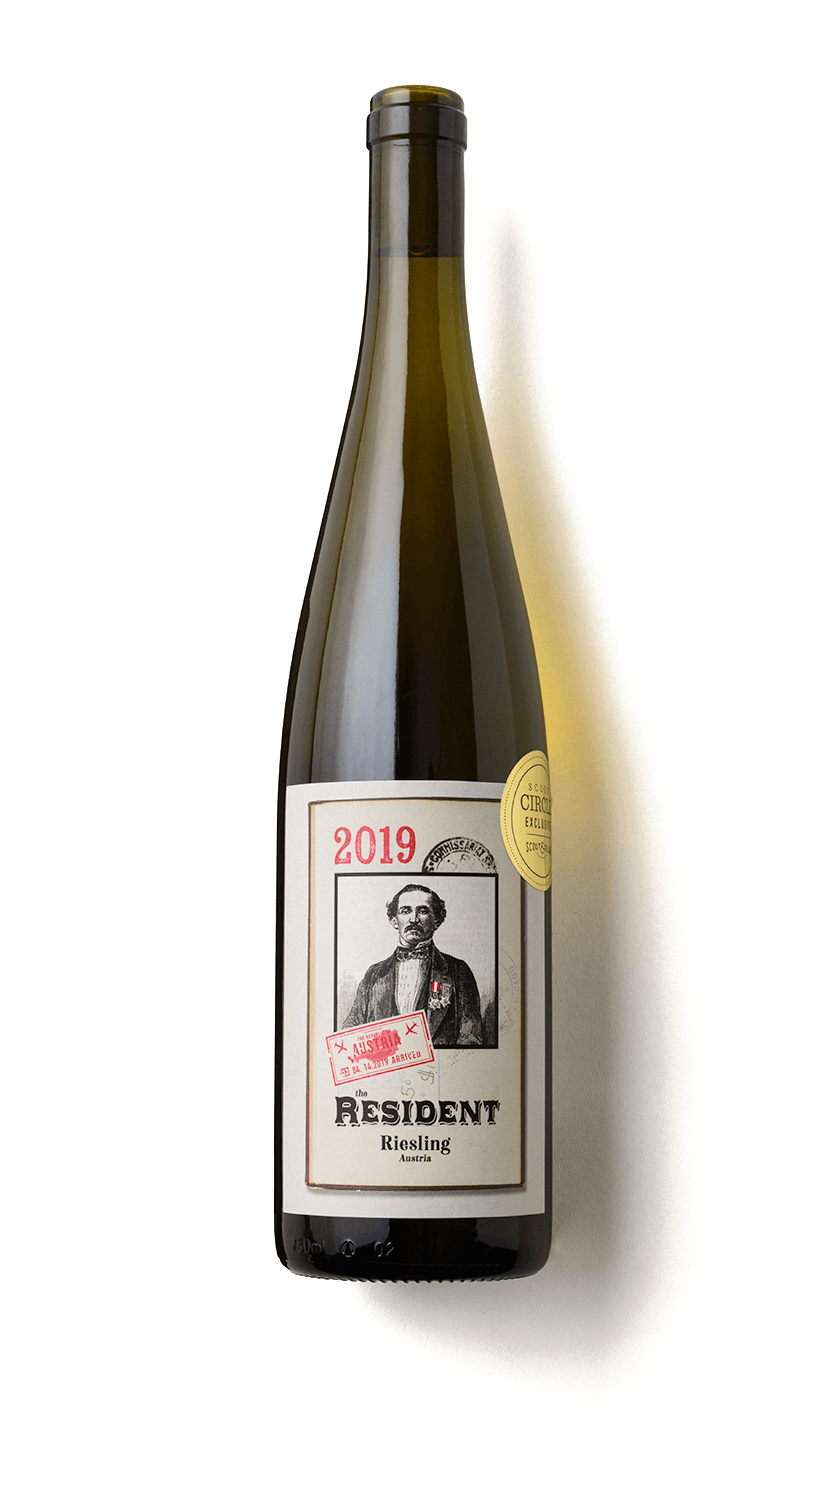 2019 THE RESIDENT RIESLING